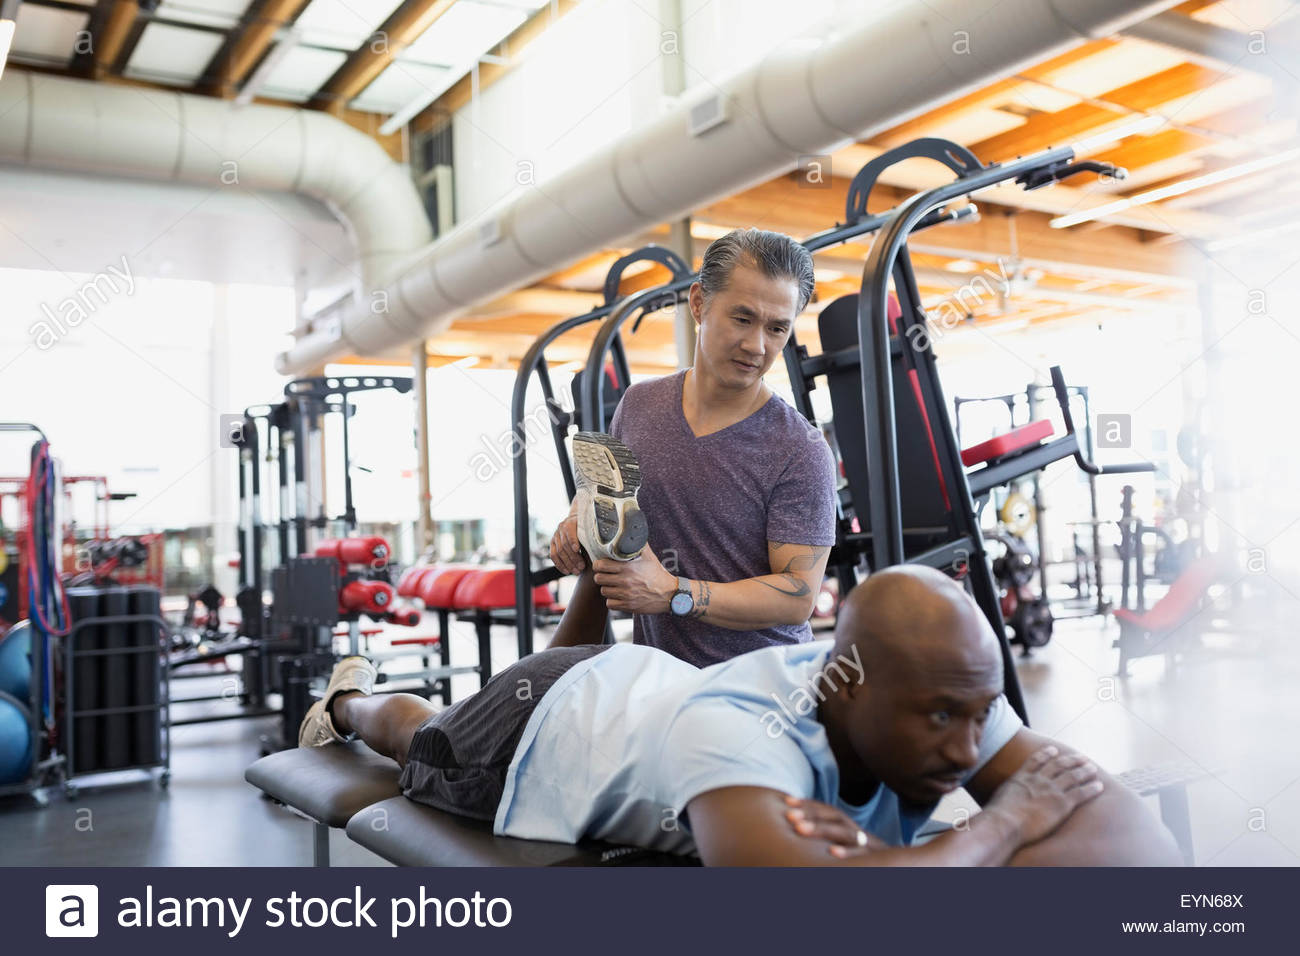 Physical therapist stretching patient leg at gym Stock Photo